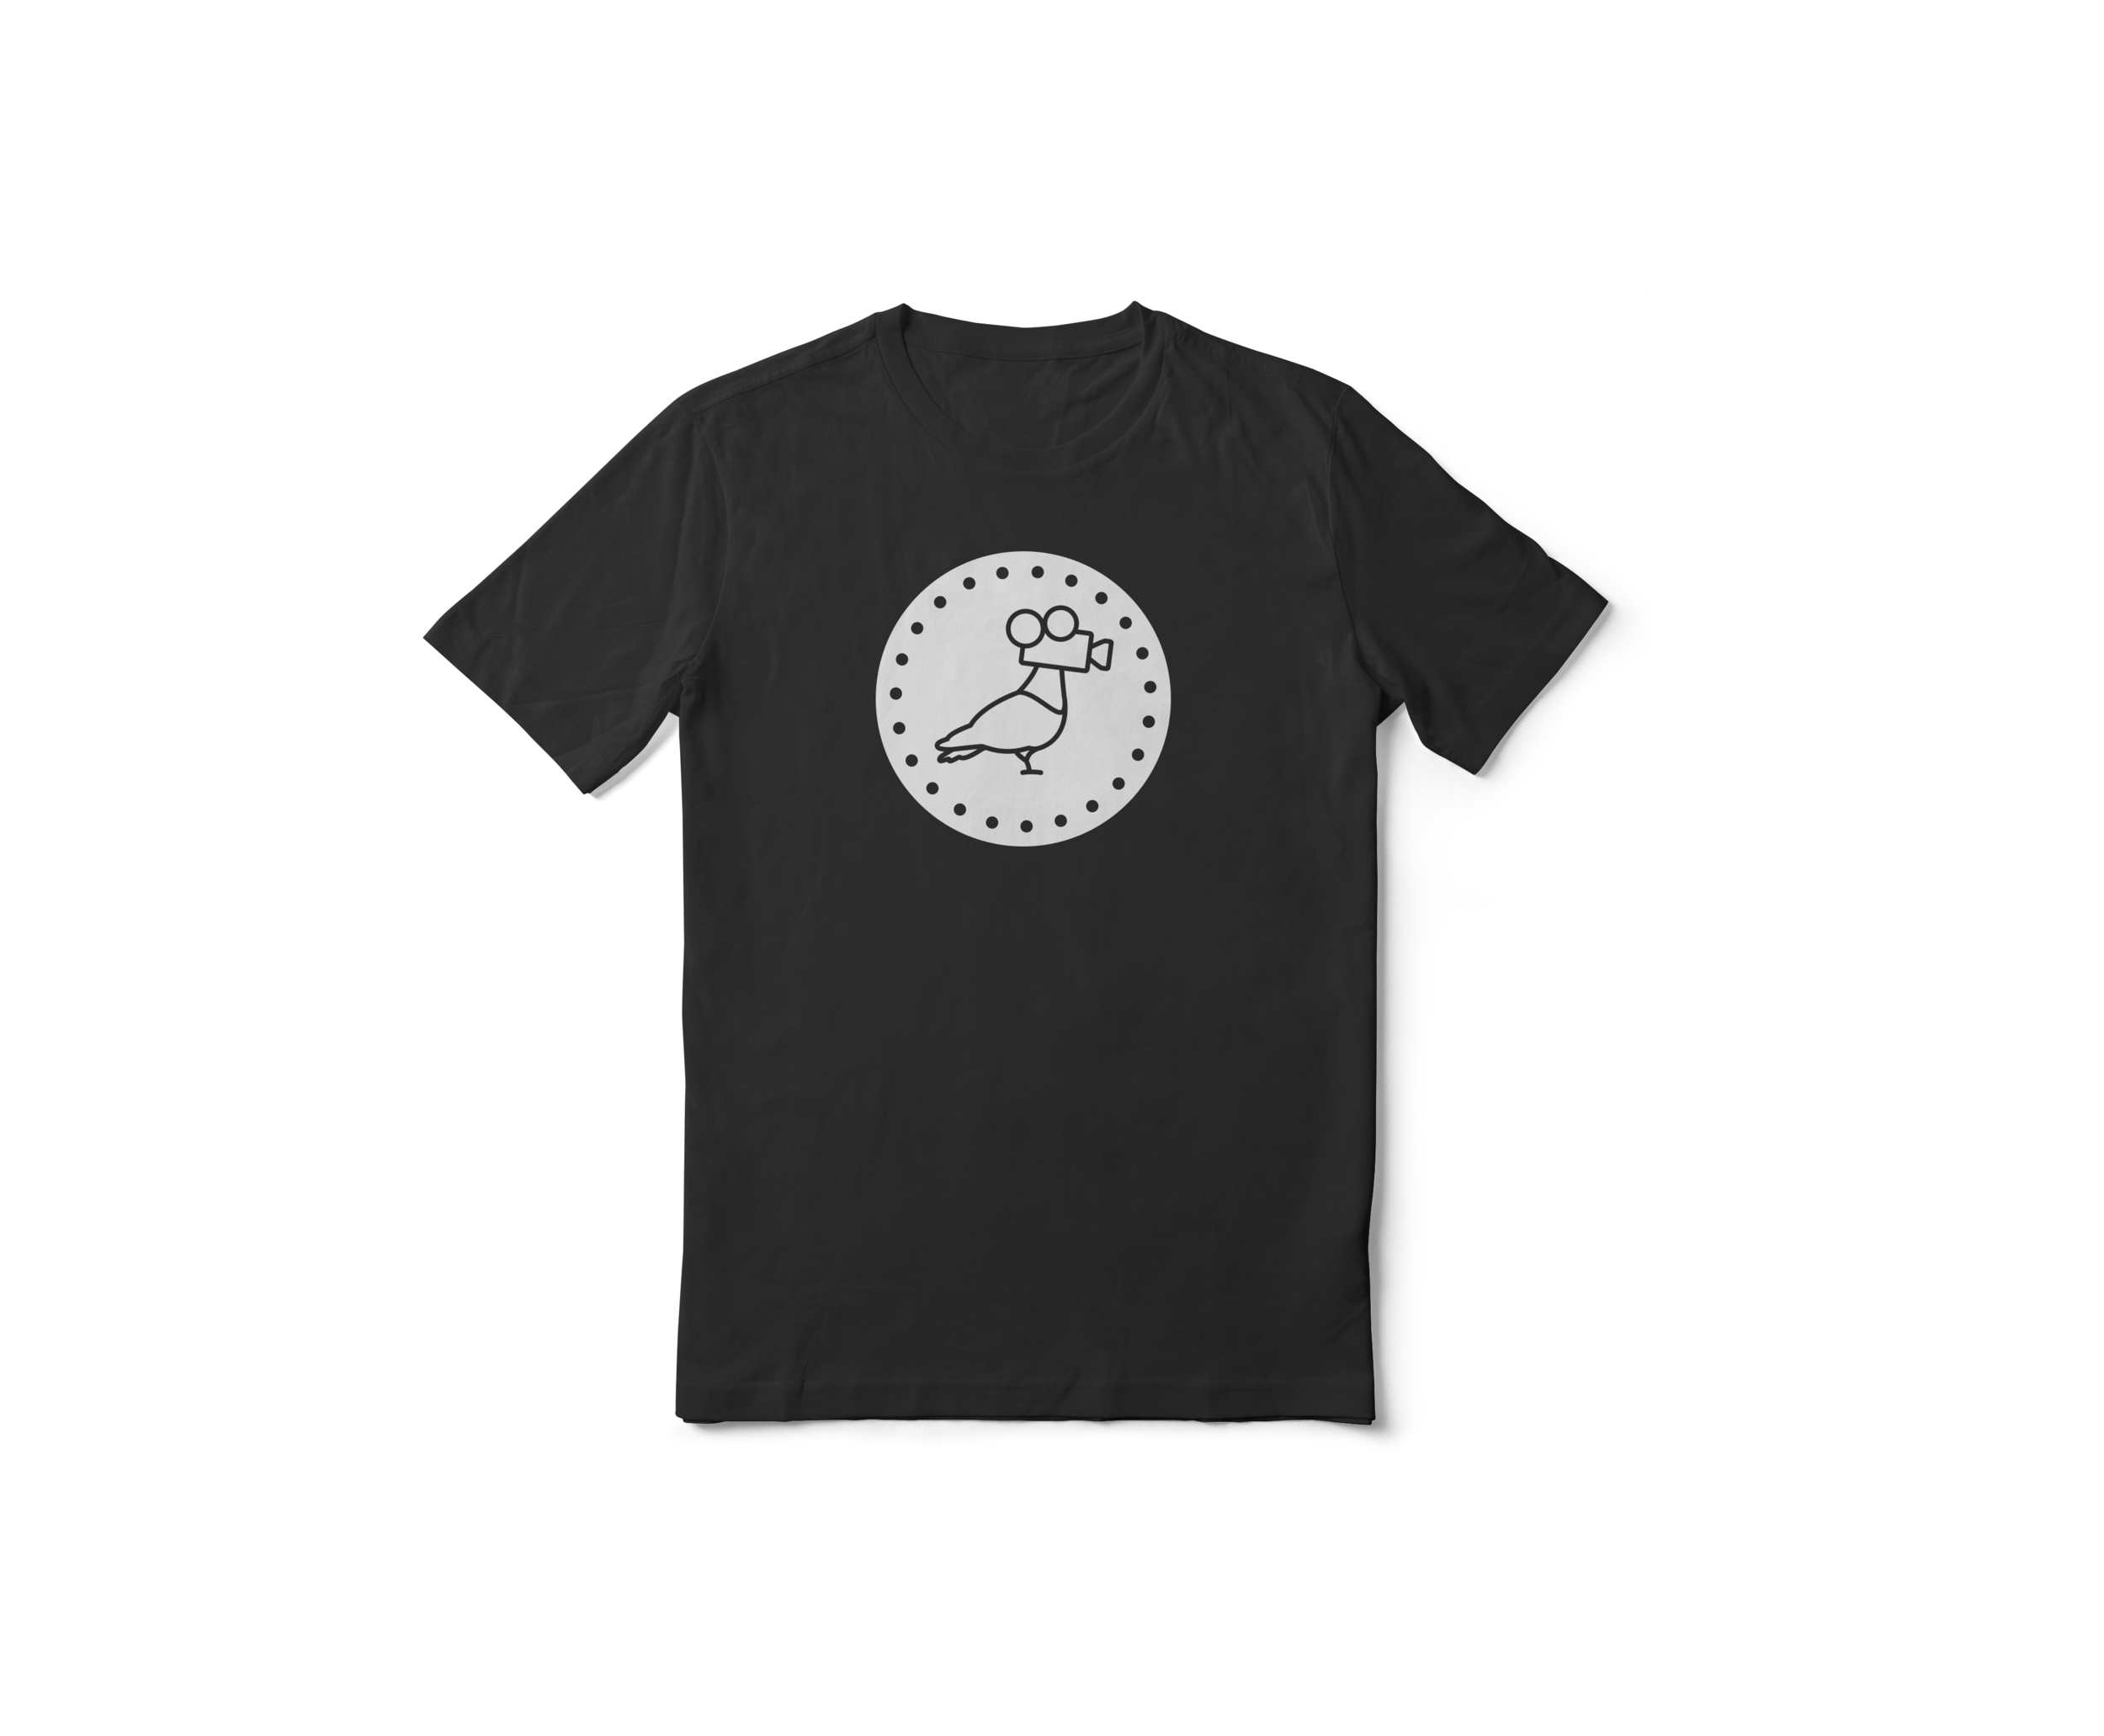 Arts-and-Entertainment_-Row-House-Cinema_Bootstrap-Design-Co_Tshirt1.png